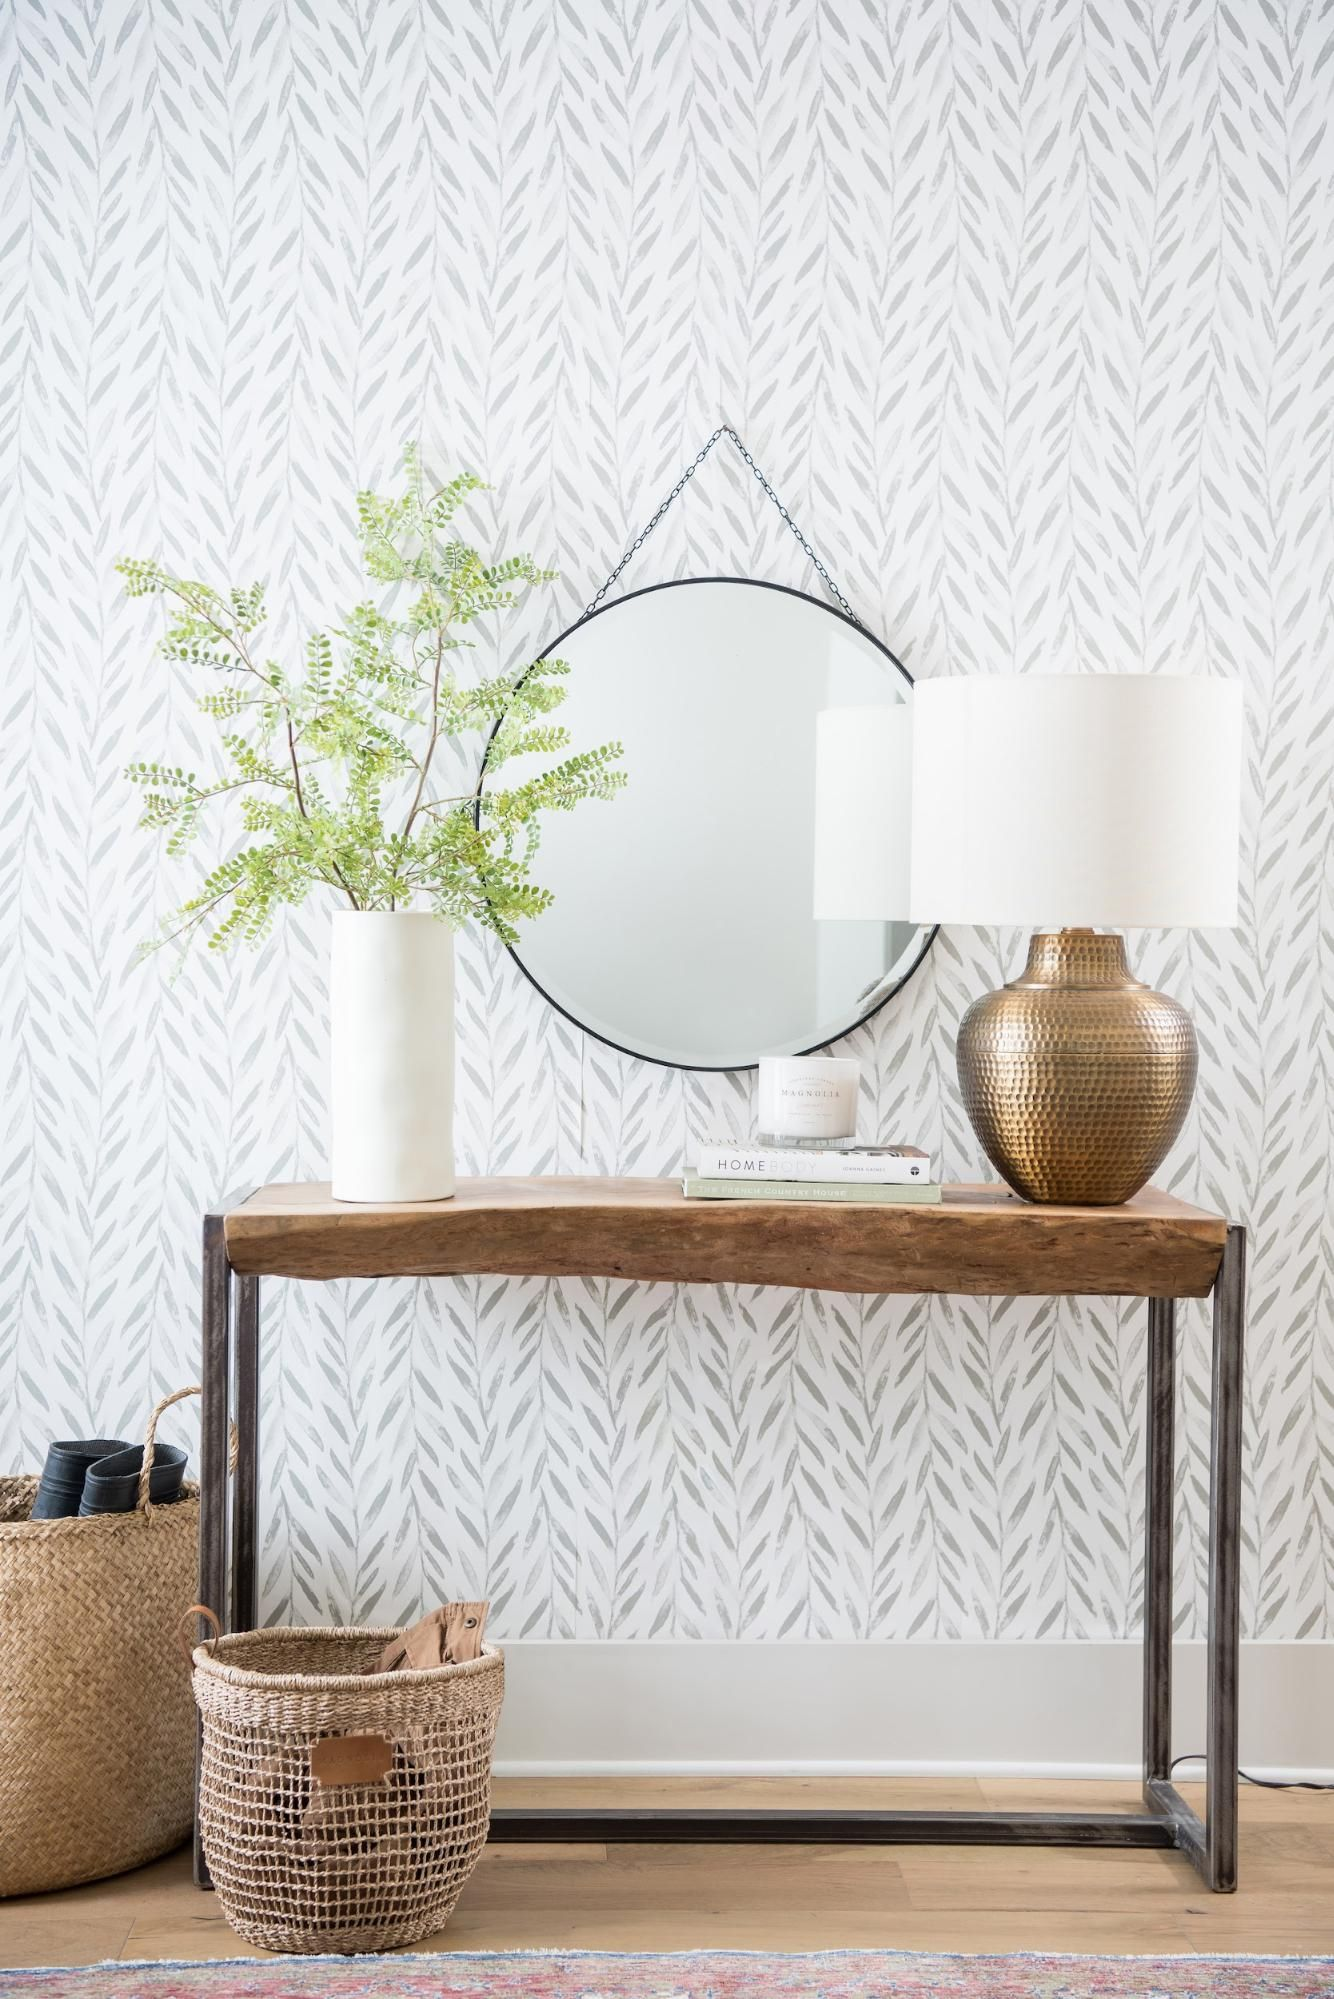 Incorporating Wallpaper Into Your Home